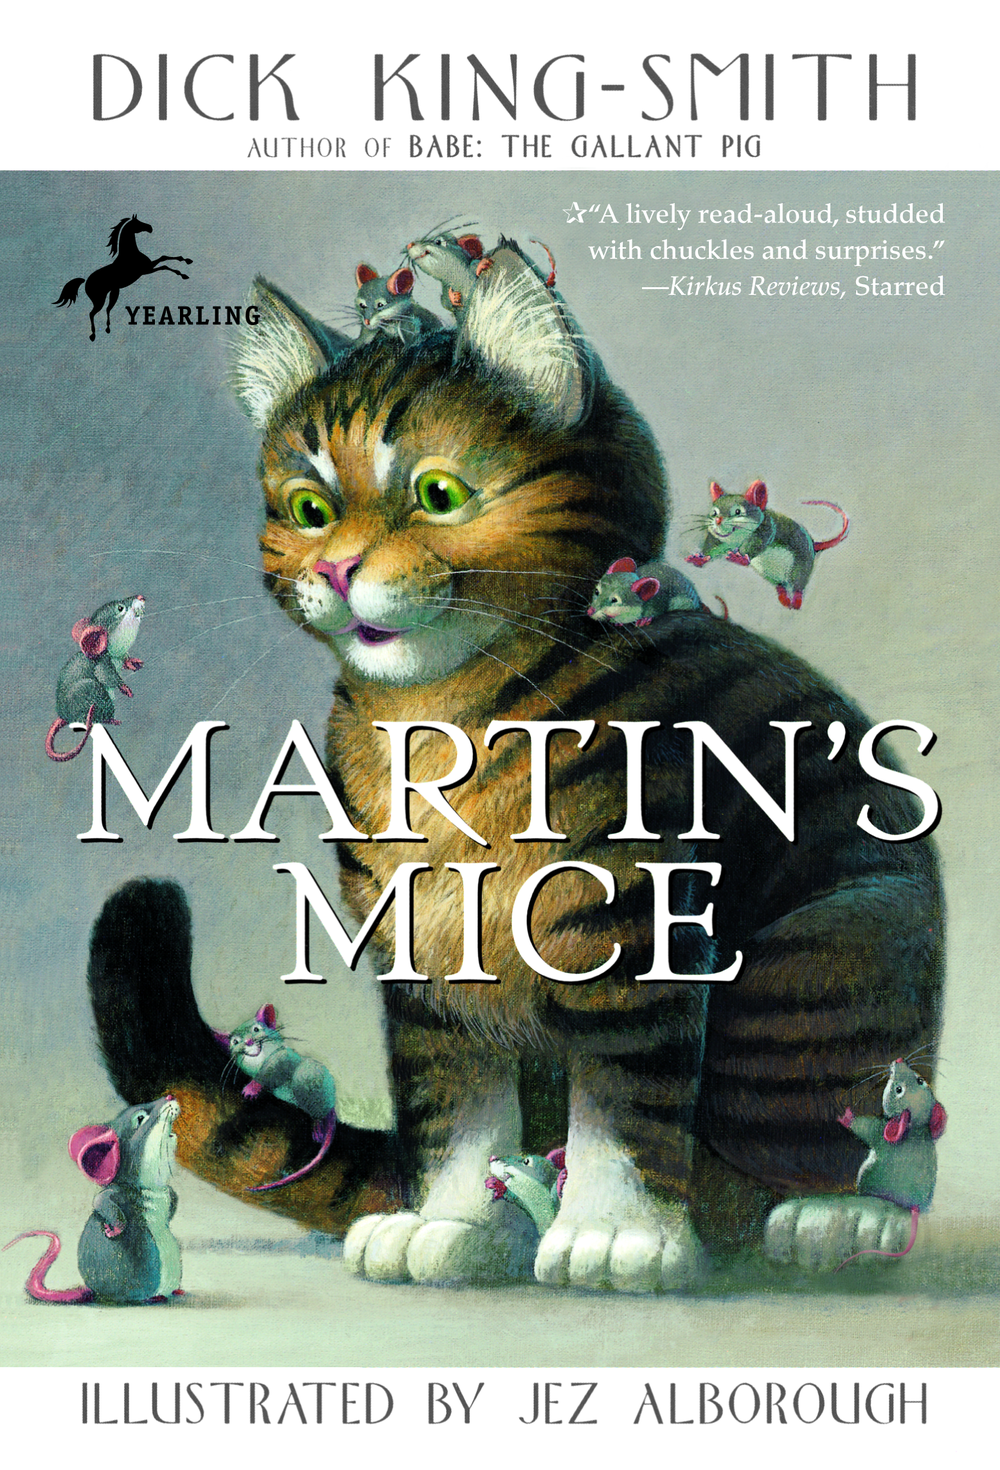 martin's mice dick king smith random house.png